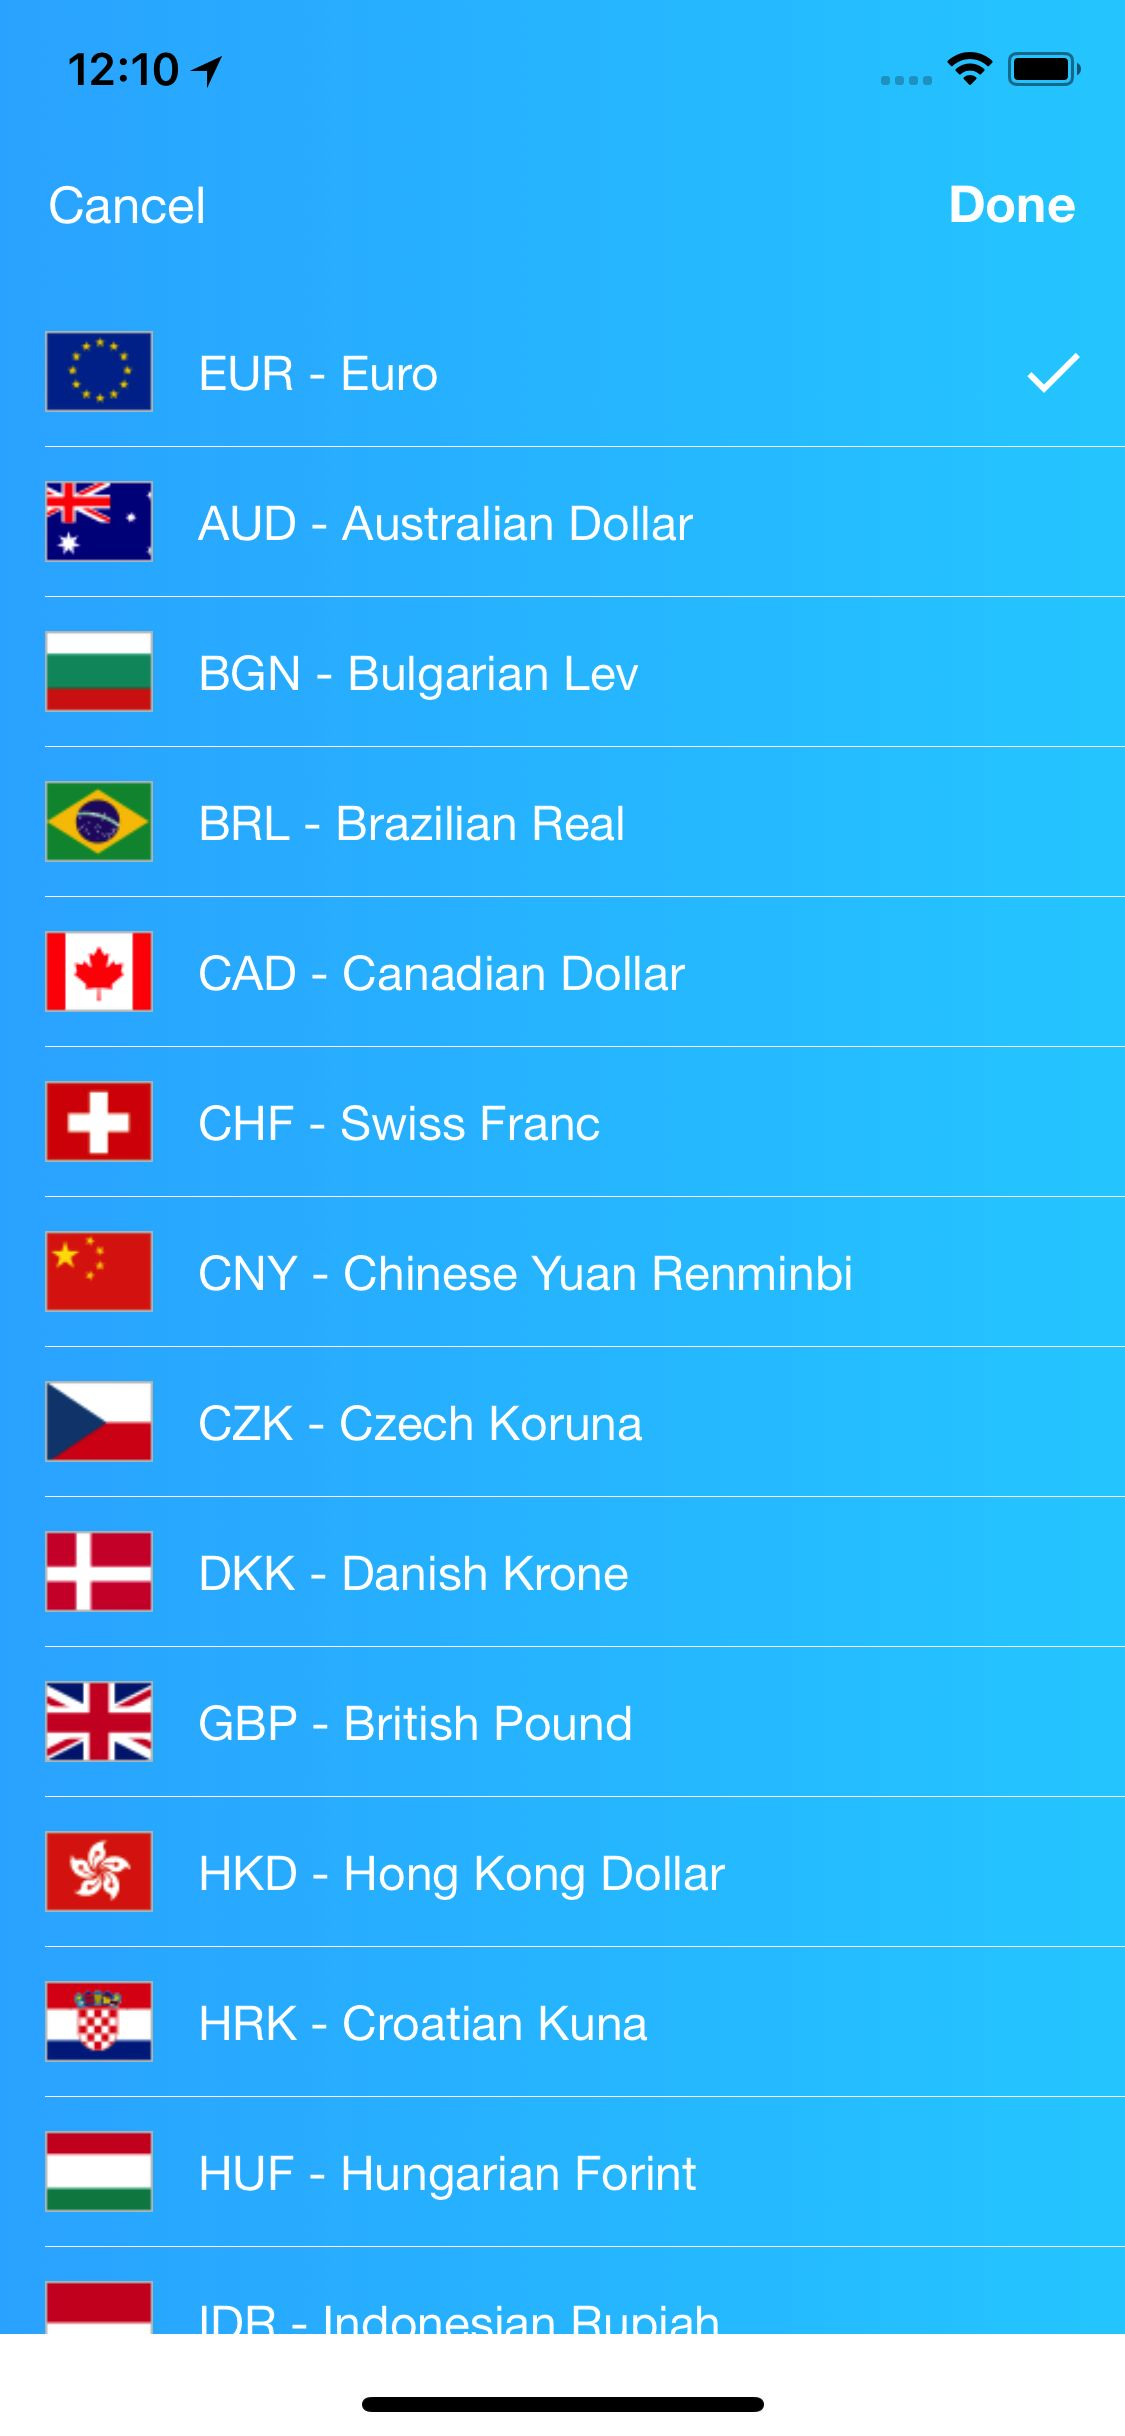 Kurrency - Currency Converter iOS Template Screenshot 3